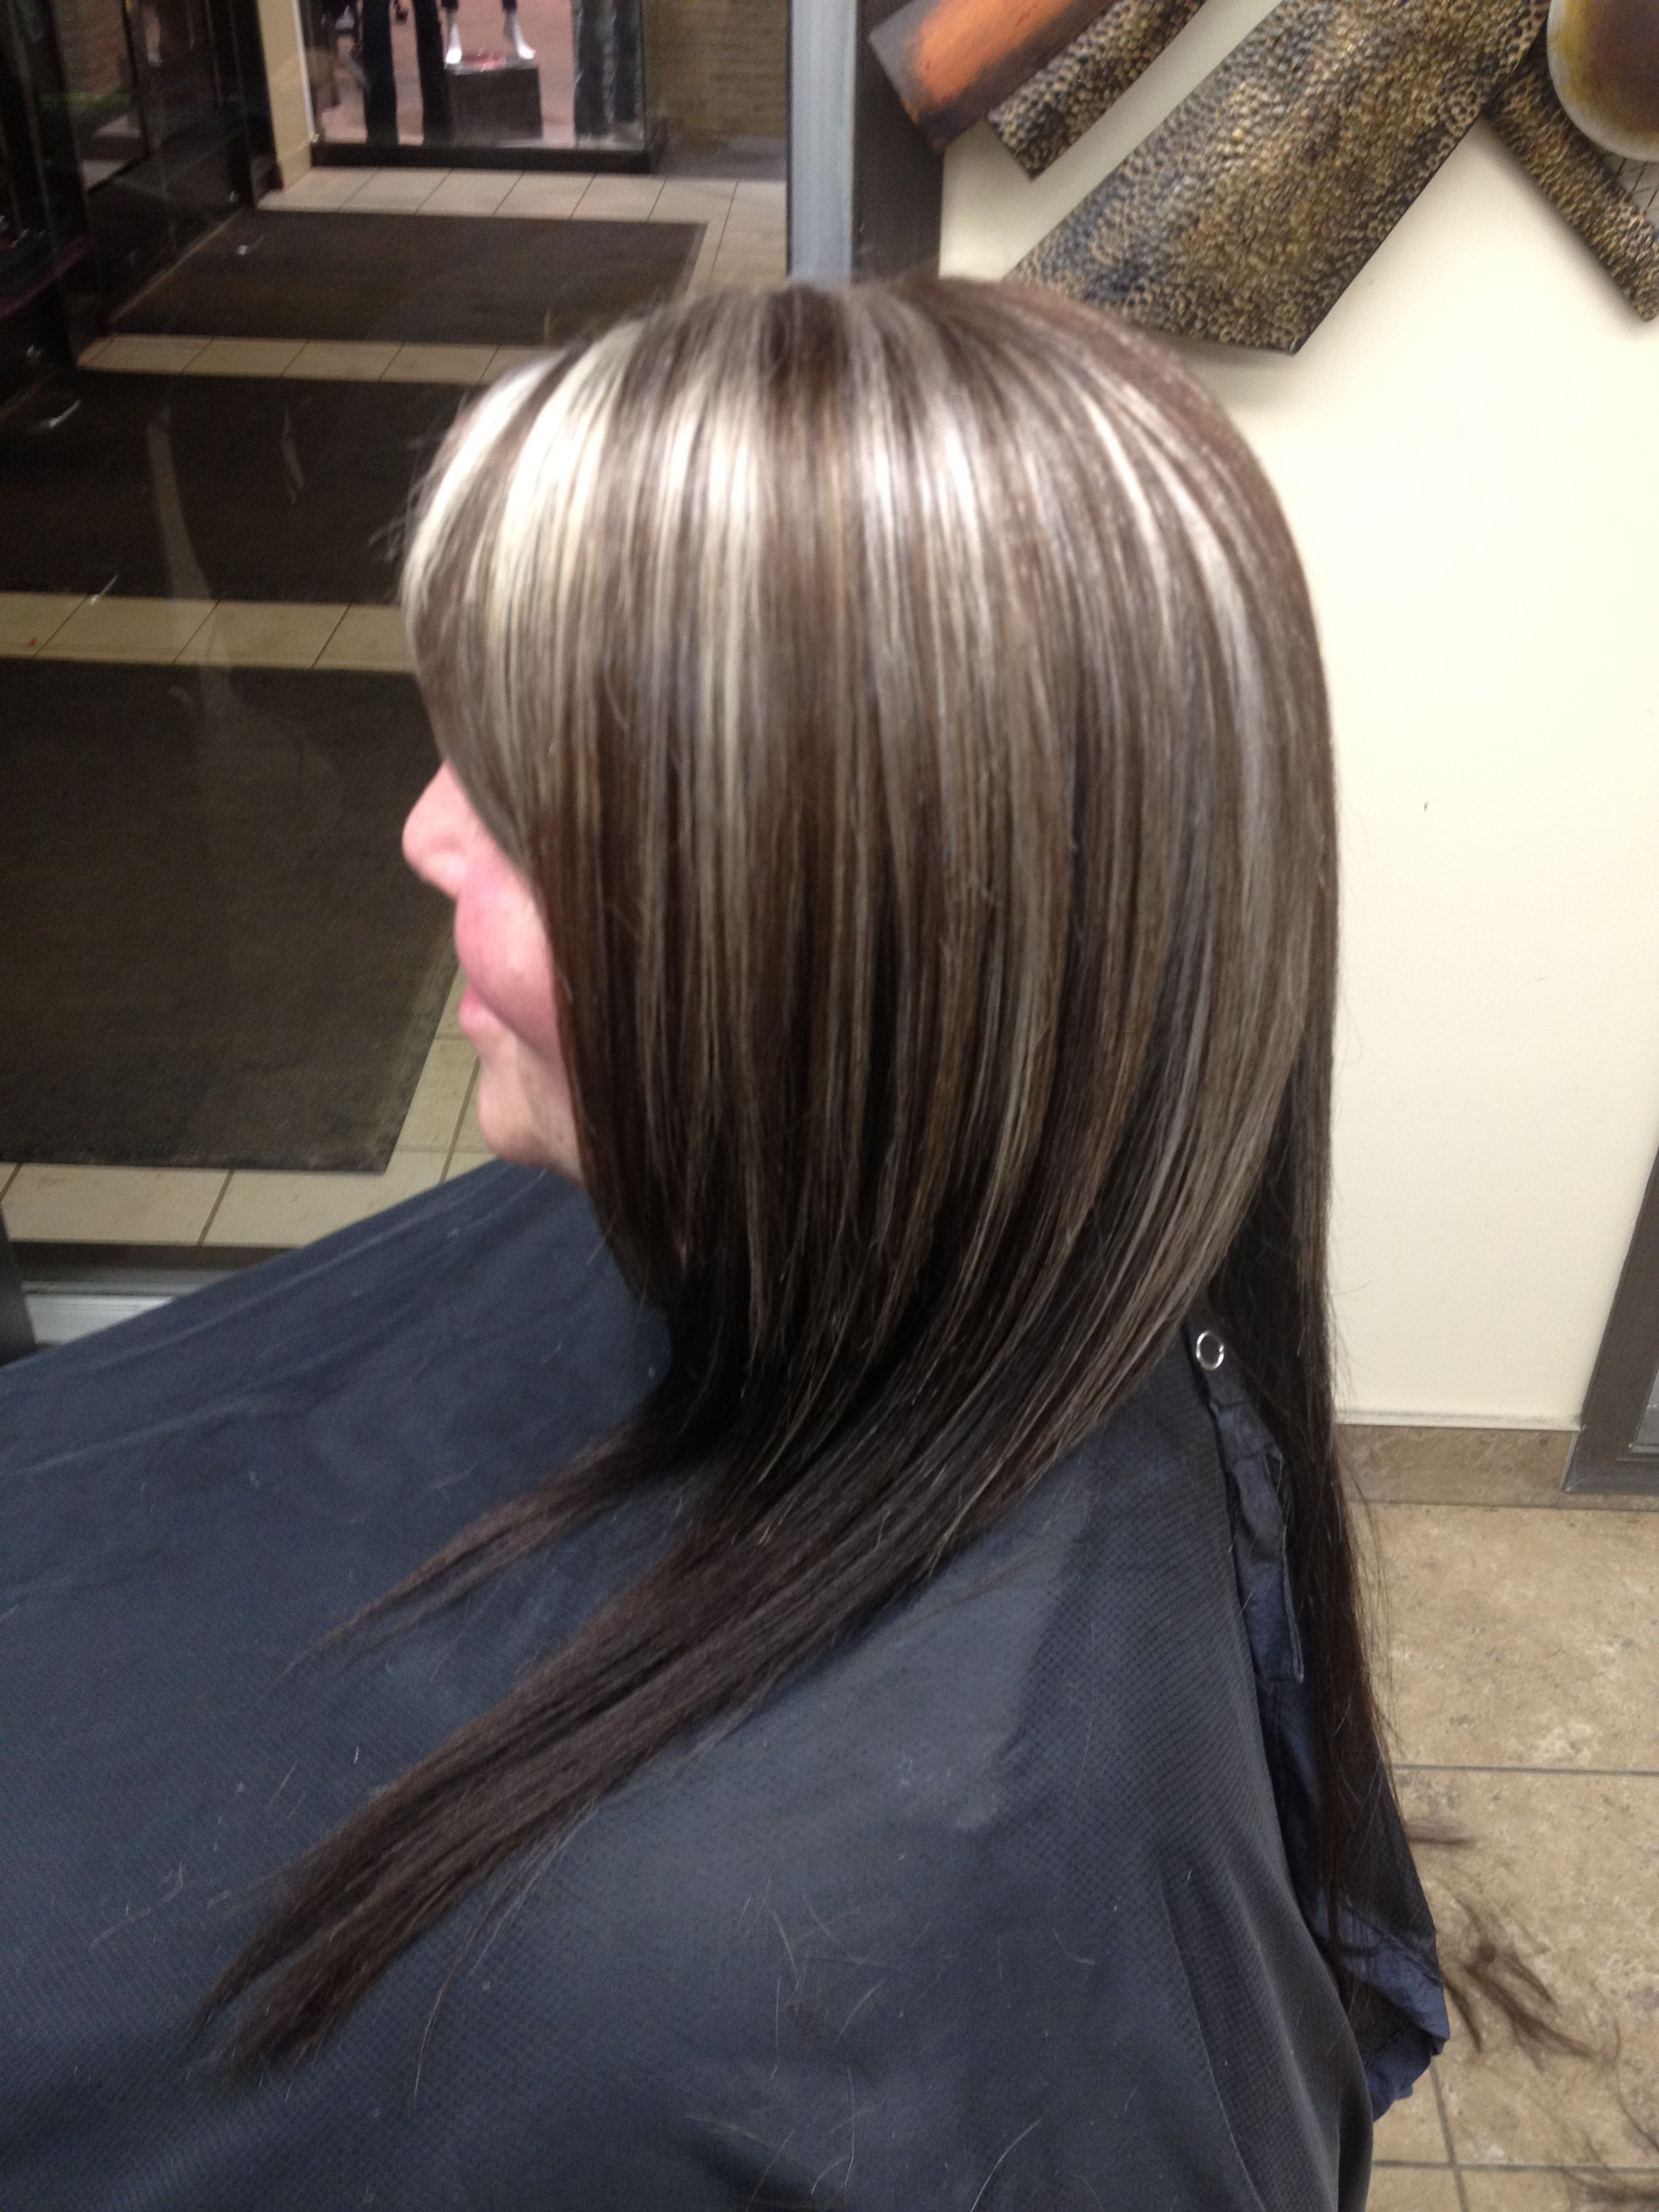 Pin By Gabriela Jaramillo On Hair Cause I Care Blending Gray Hair Gray Hair Highlights Hair Styles